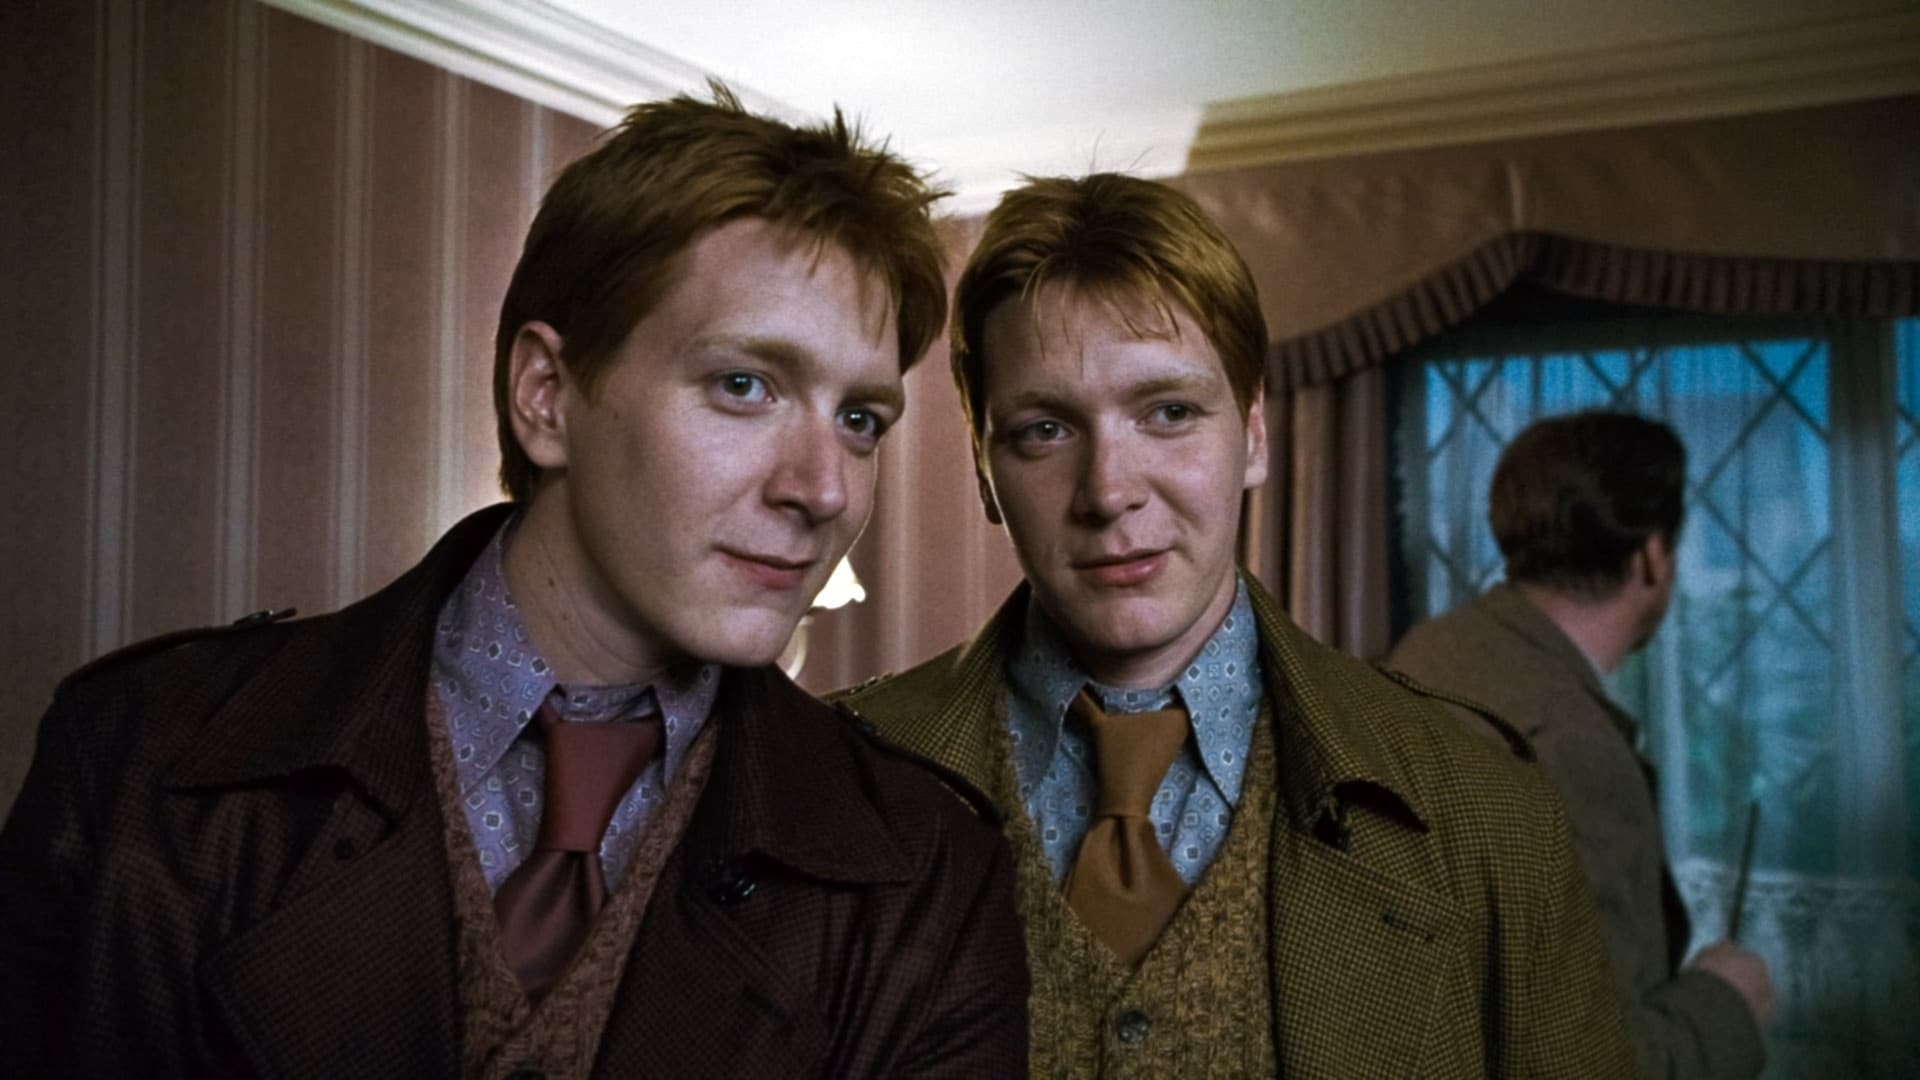 Fred and George knew the dark secrets